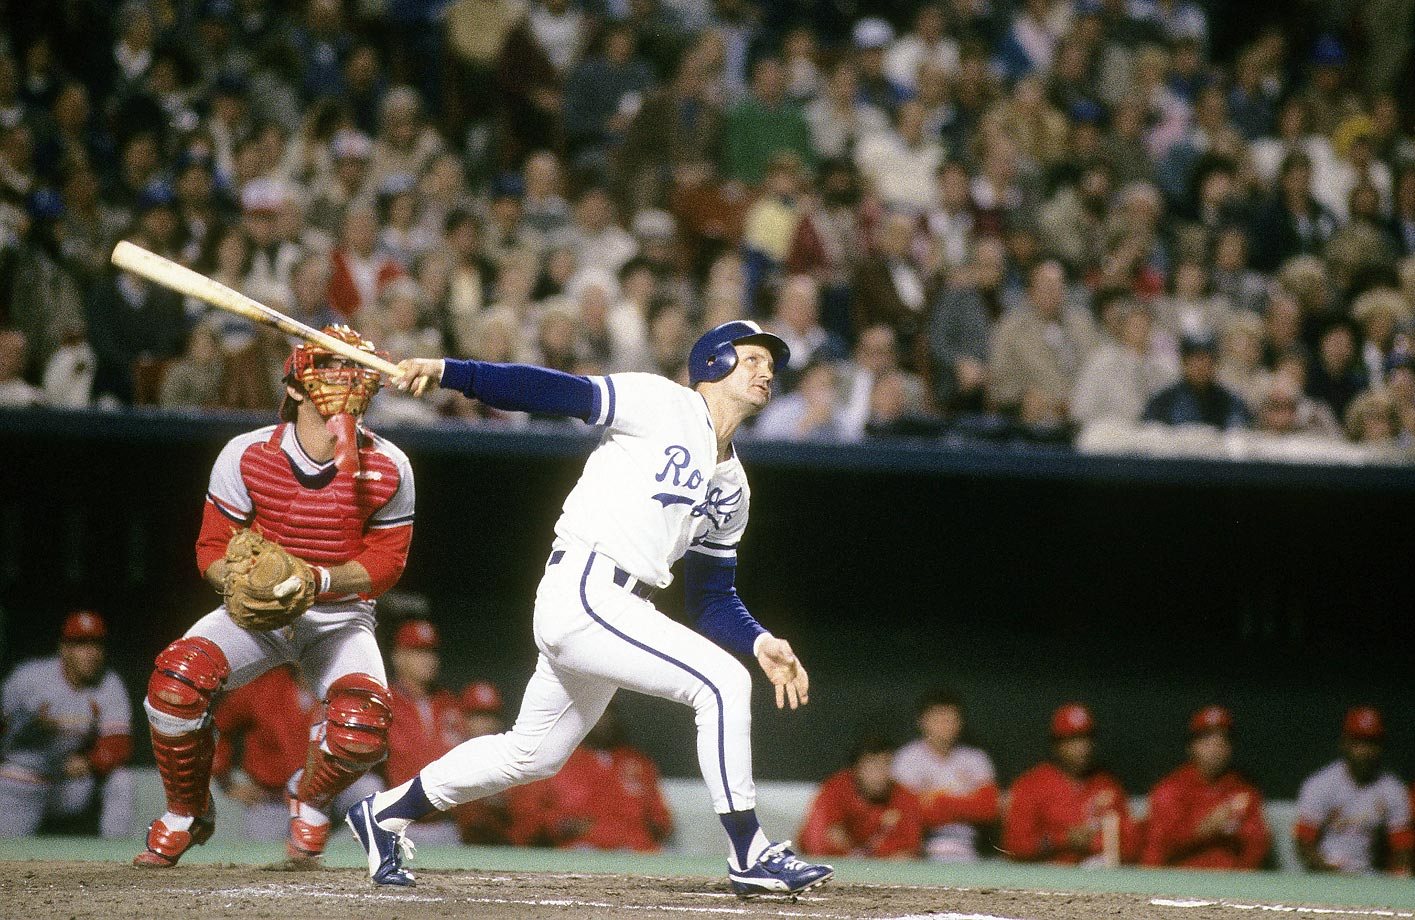 George Brett watches the ball after a hit against the Cardinals. He had previously been named the ALCS MVP for his performance against the Toronto Blue Jays.